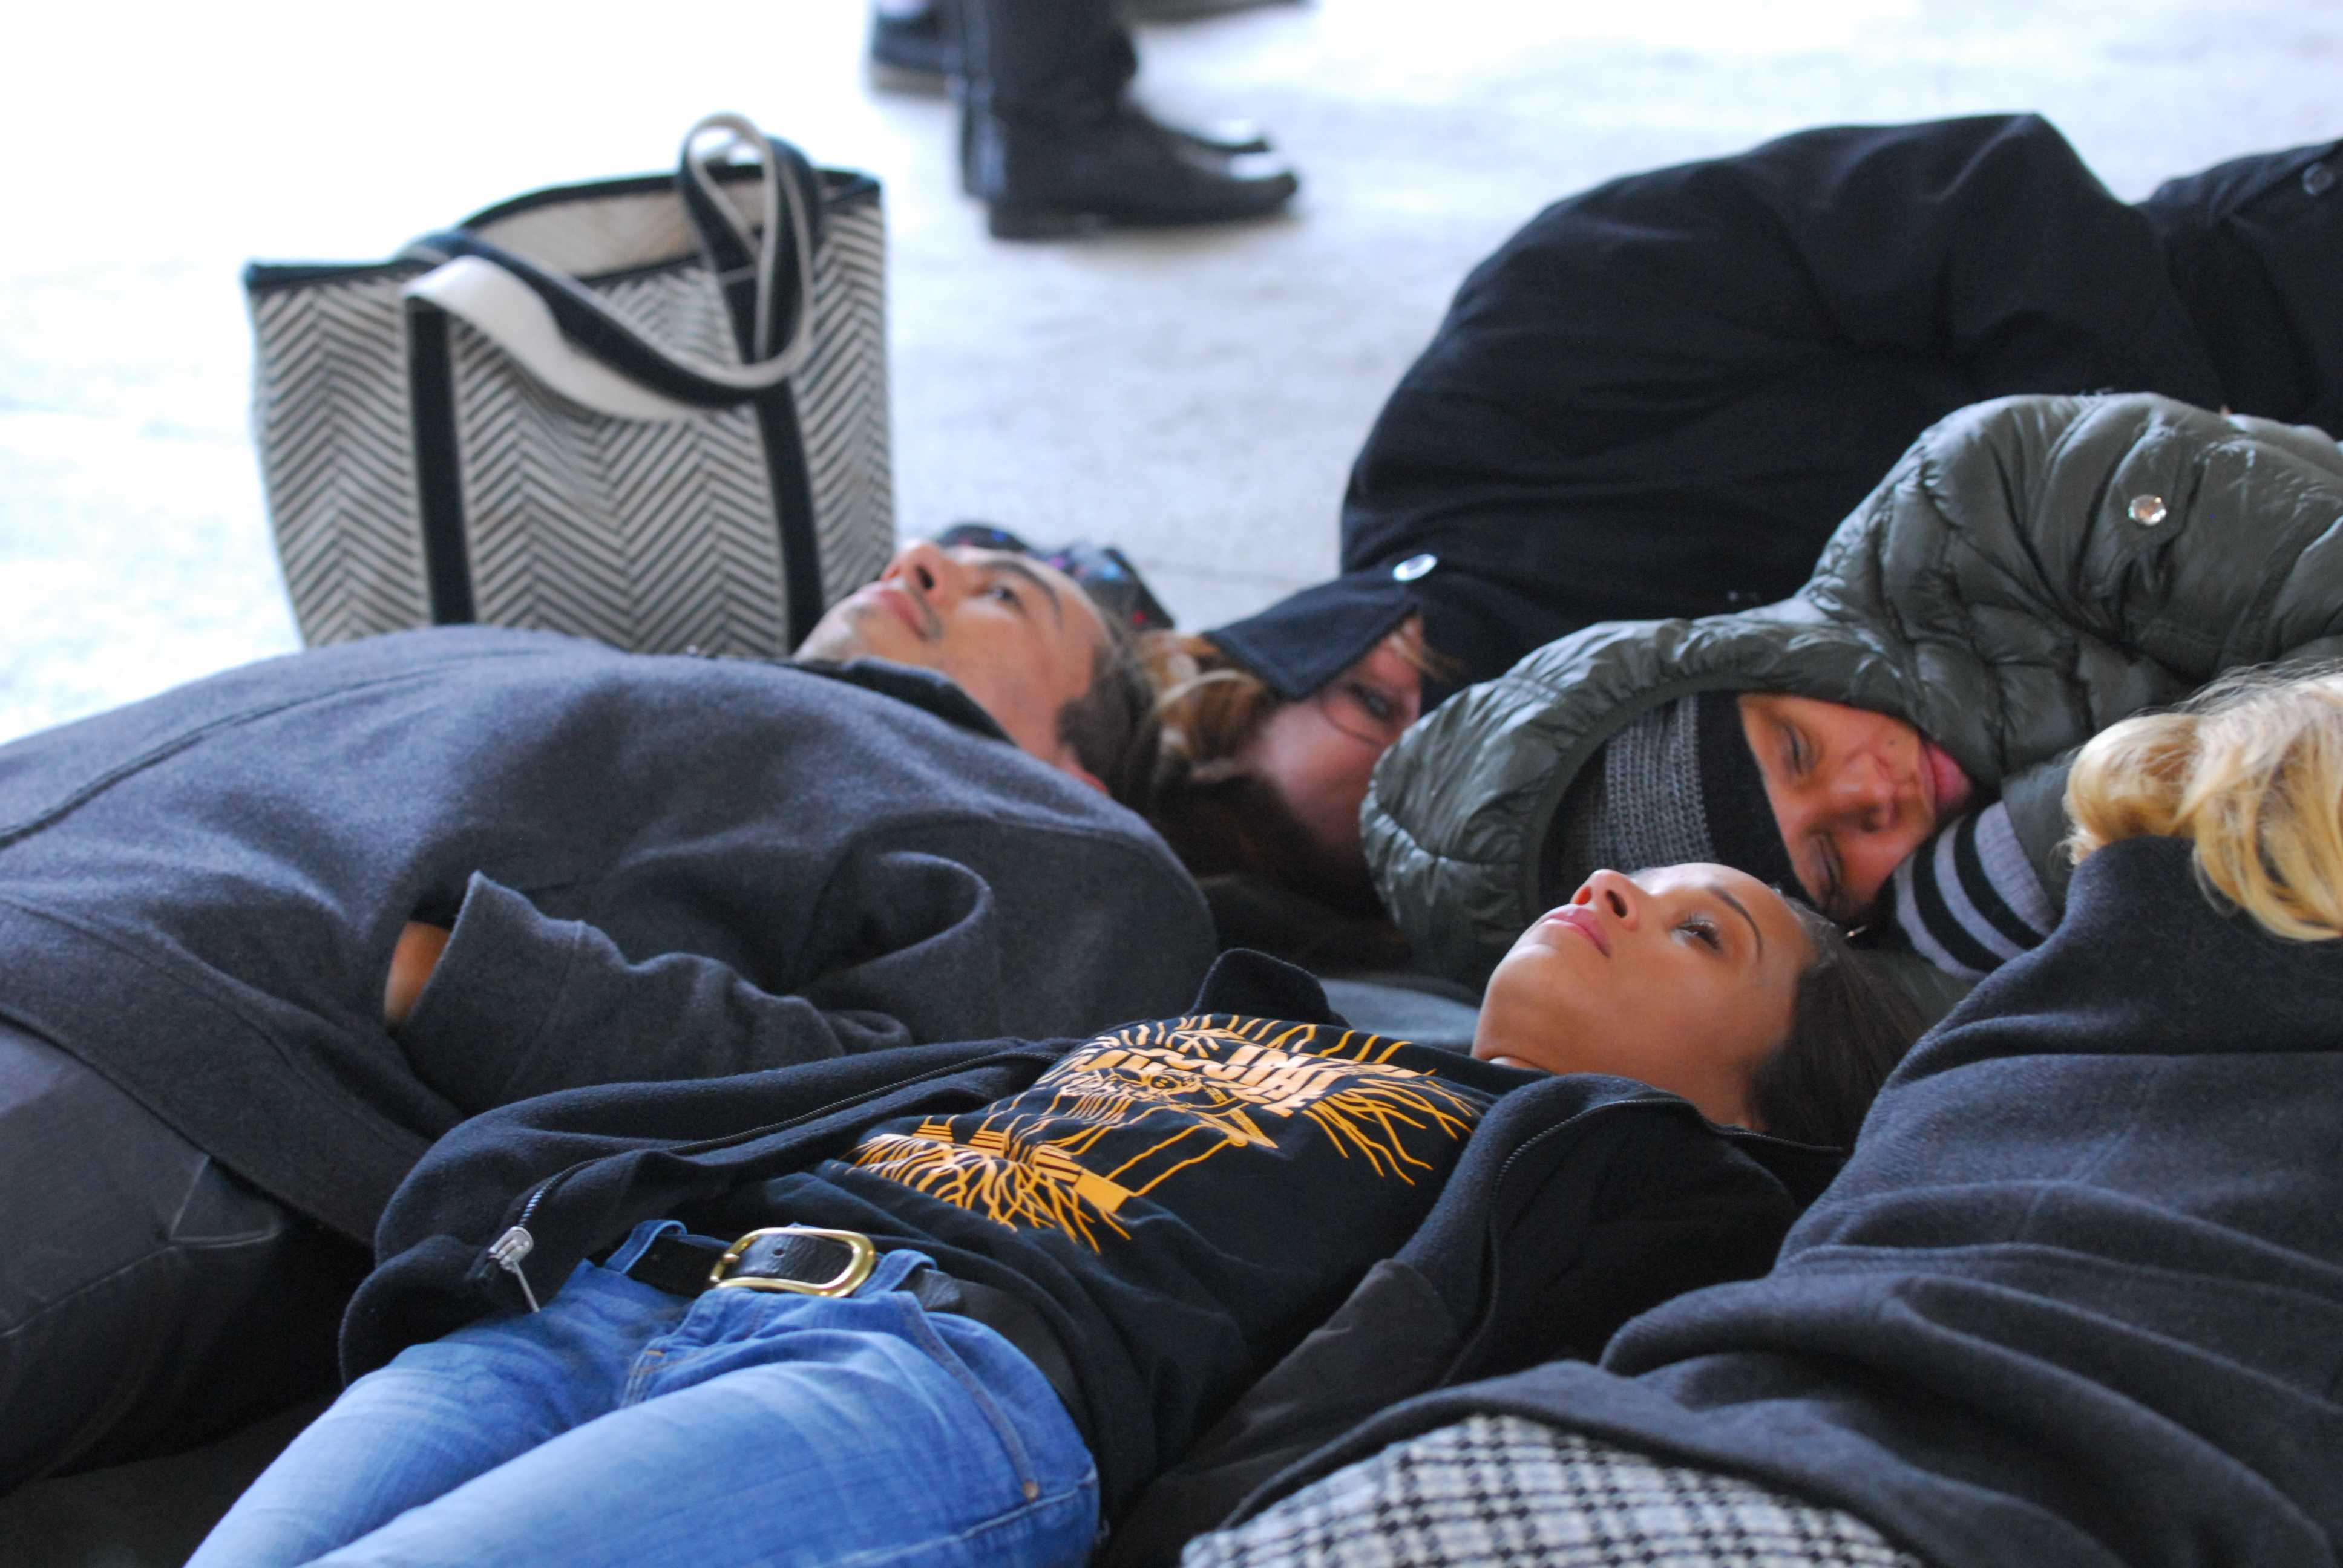 Members of the CSUN chapter of the Black Student Union lie on the ground in protest of the killing of Michael Brown, who was shot by Ferguson police officer Darren Wilson. On Nov. 24, a grand jury decided not to indict Wilson in the shooting of the unarmed teenager.